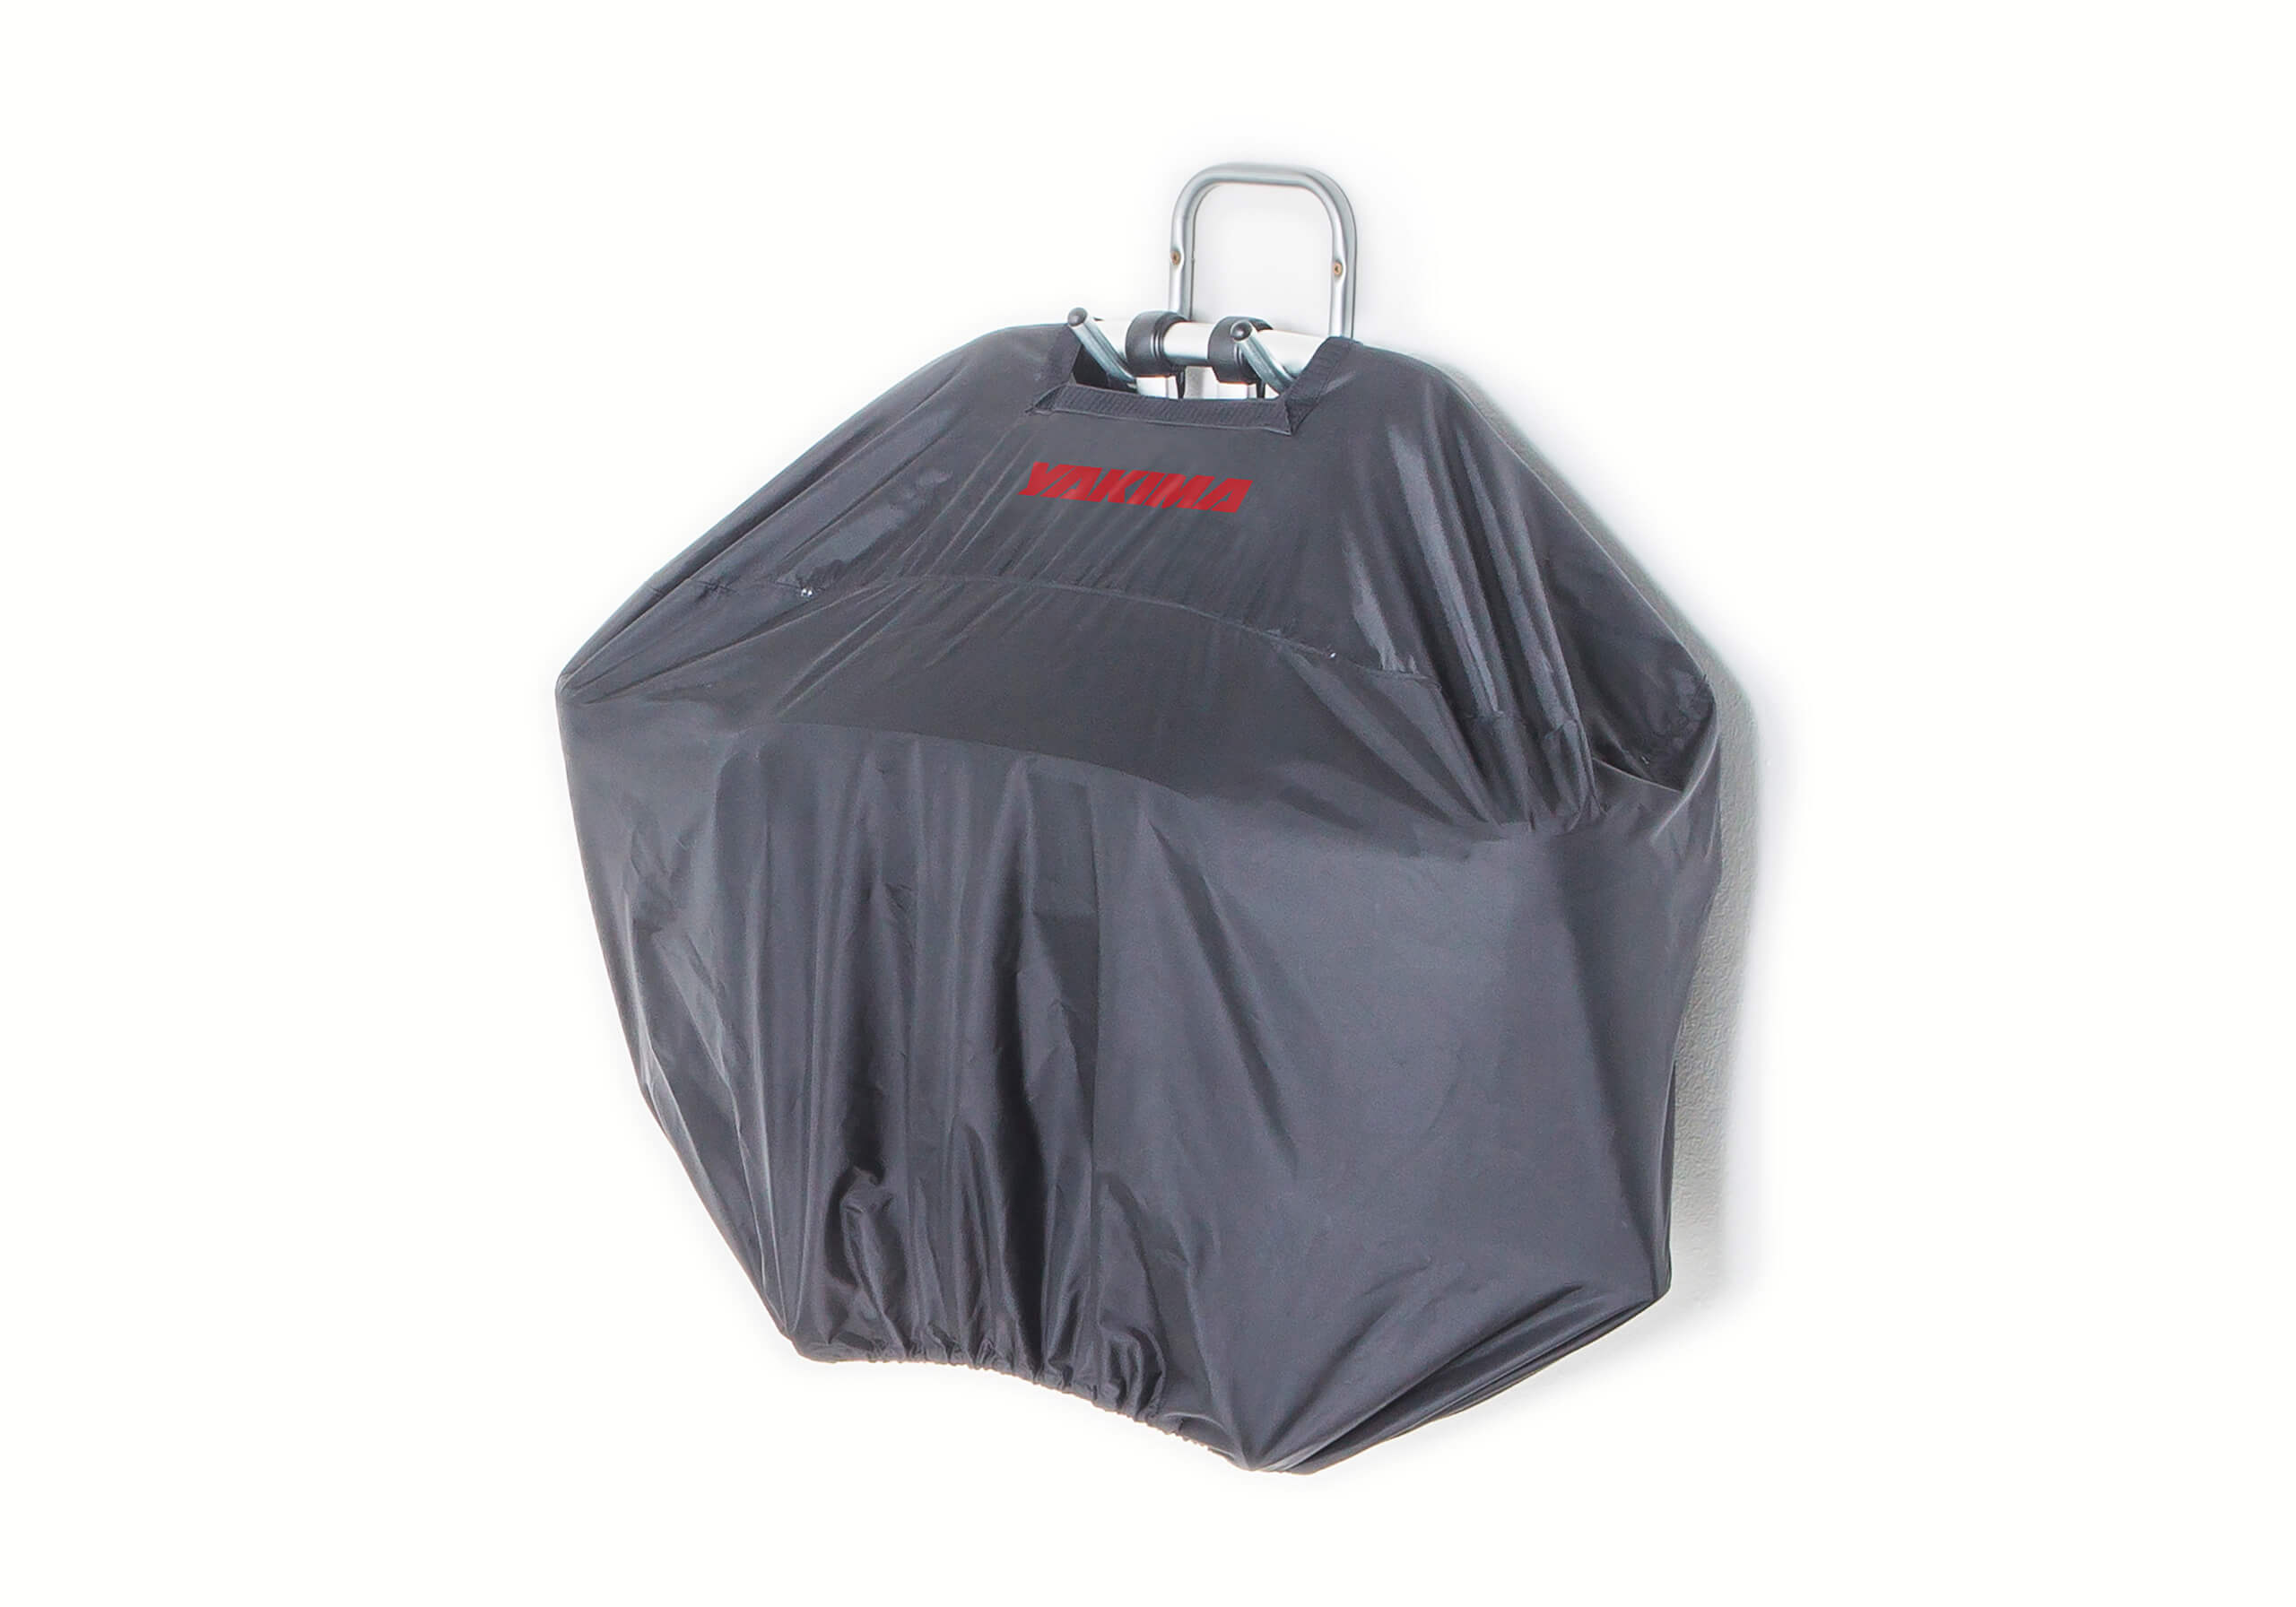 :Yakima ClickCover storage cover no. 8002498